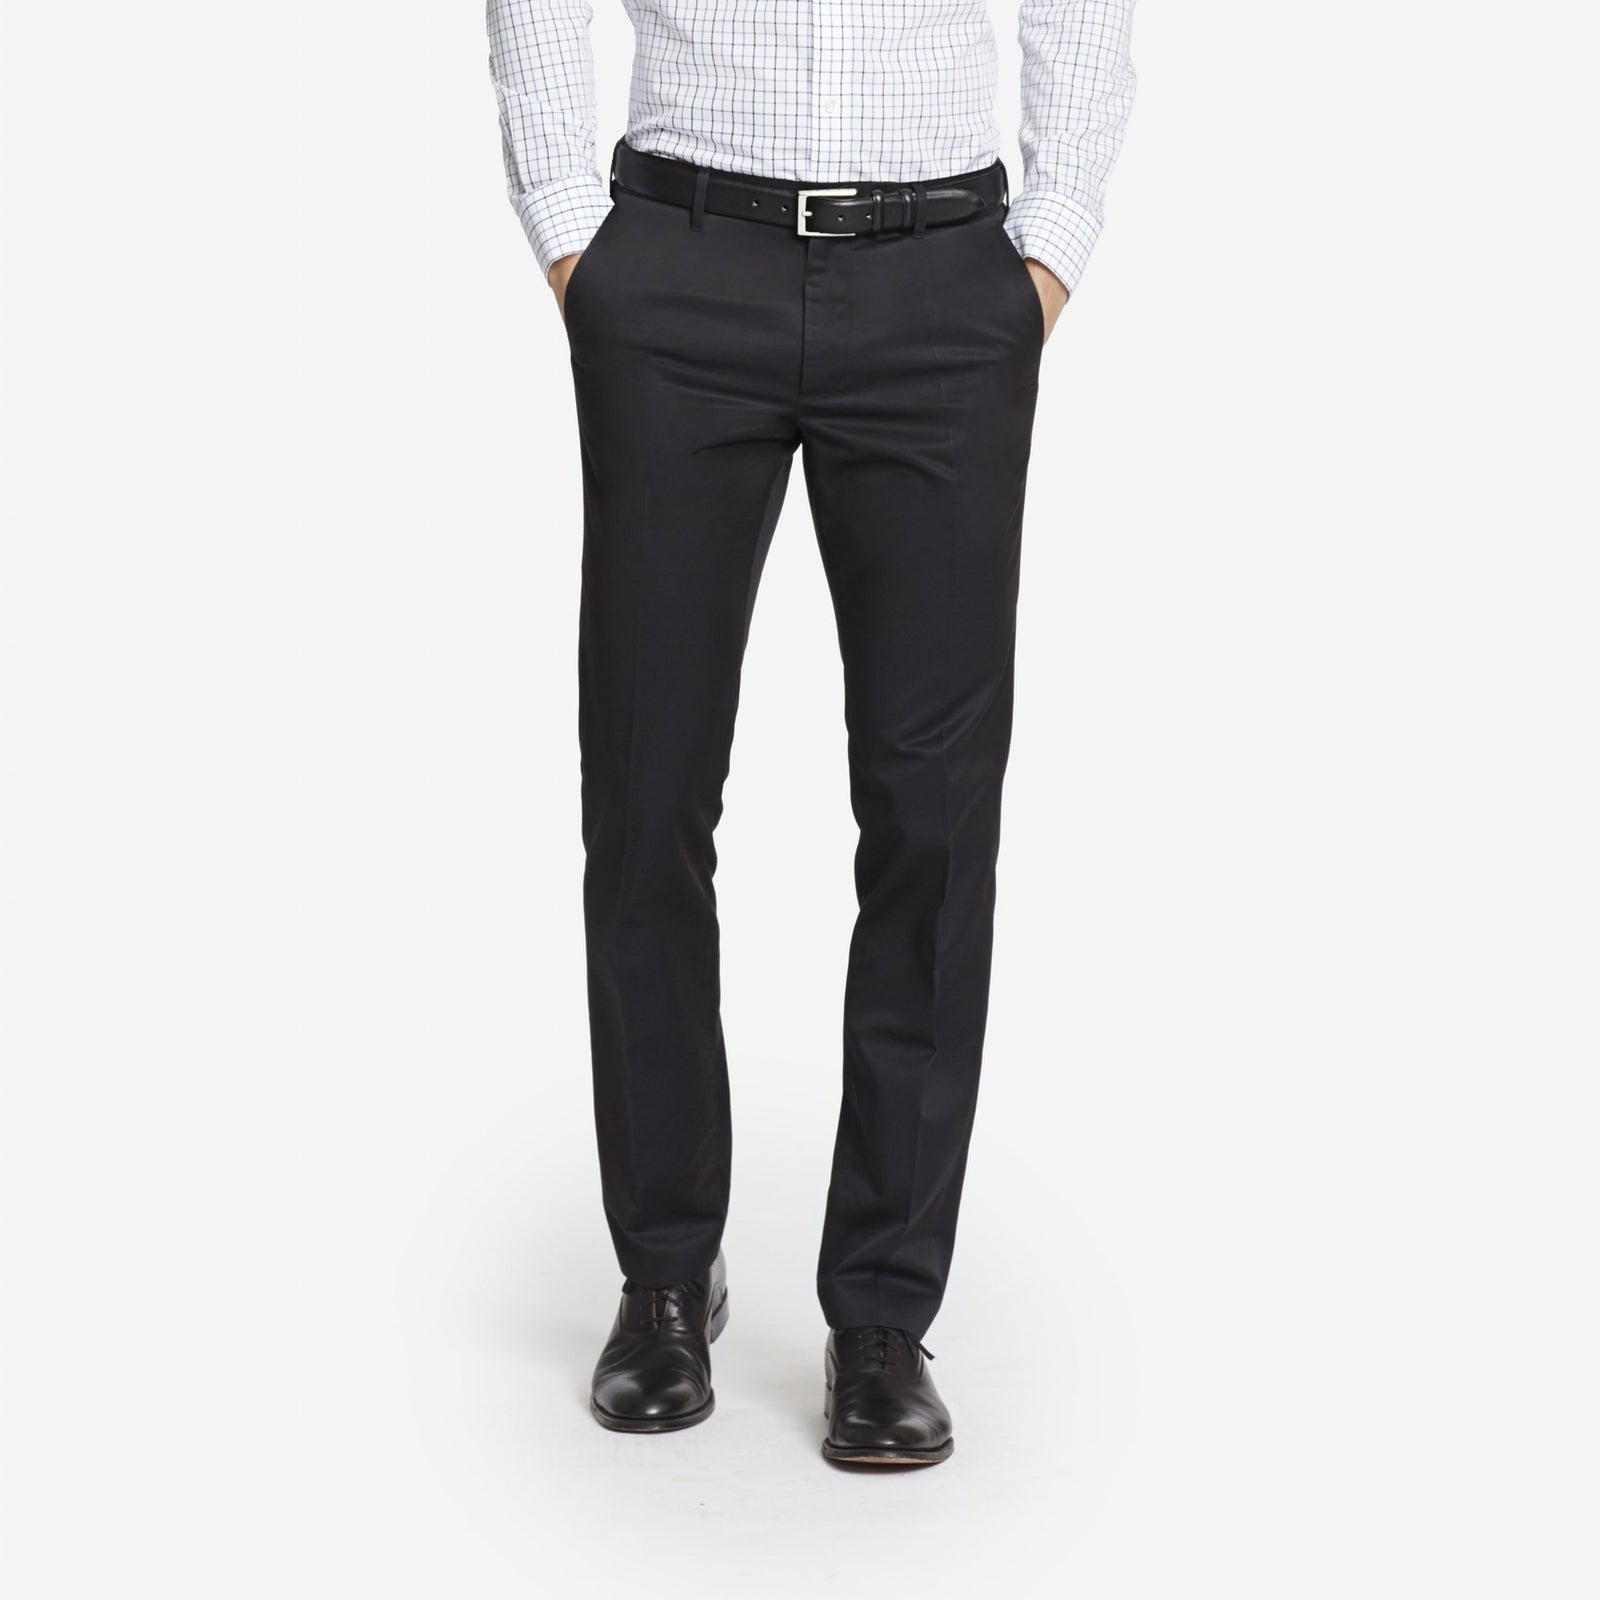 Black Bespoke Tailored Cotton Trousers